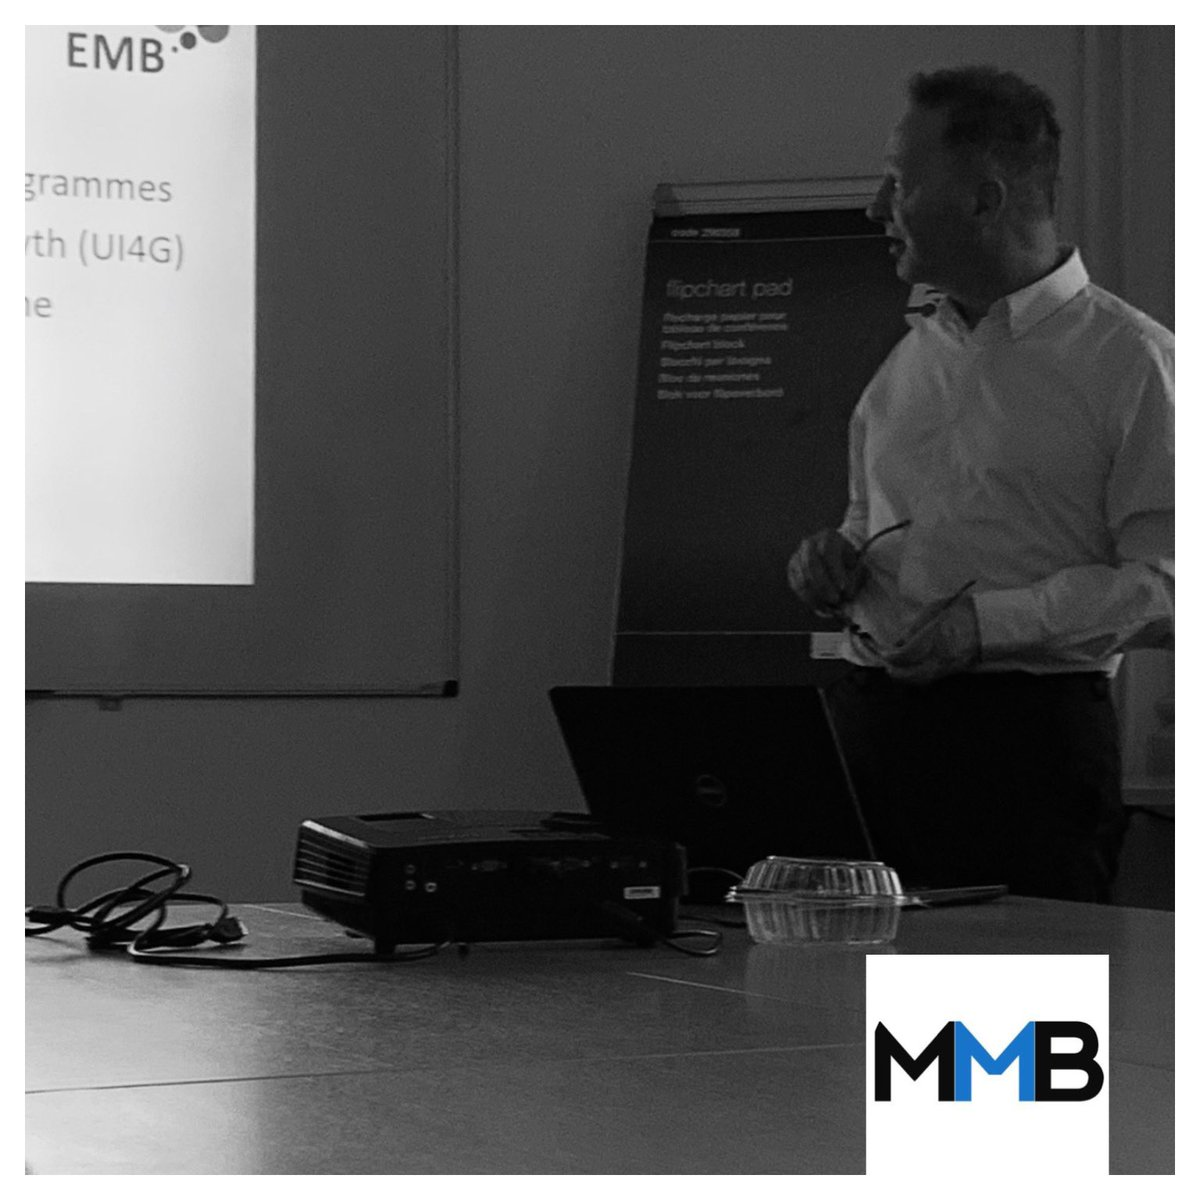 Interesting presentation from @DavidSmithOwls at this morning's @its_mmb meeting @mansfield_i - talking grants for growth-minded business. #mansfield #ashfield #business